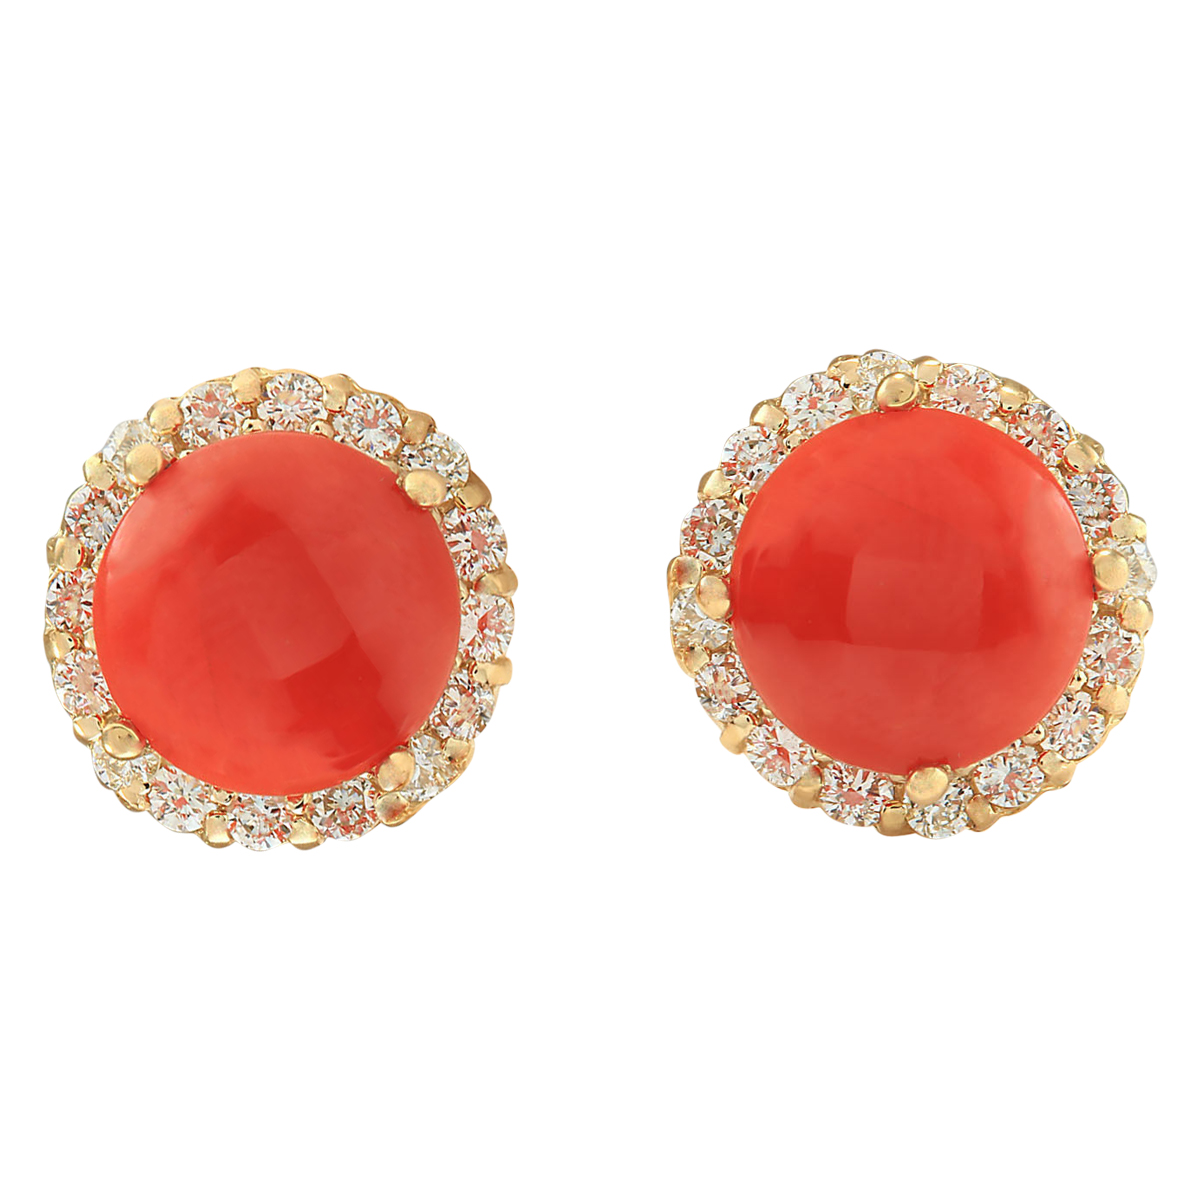 1f4726794 Find best value and selection for your RED CORAL EARRINGS 2 3 4 R23940  search on eBay.Our coral earring collection is diverse, nicely priced and  readily ...